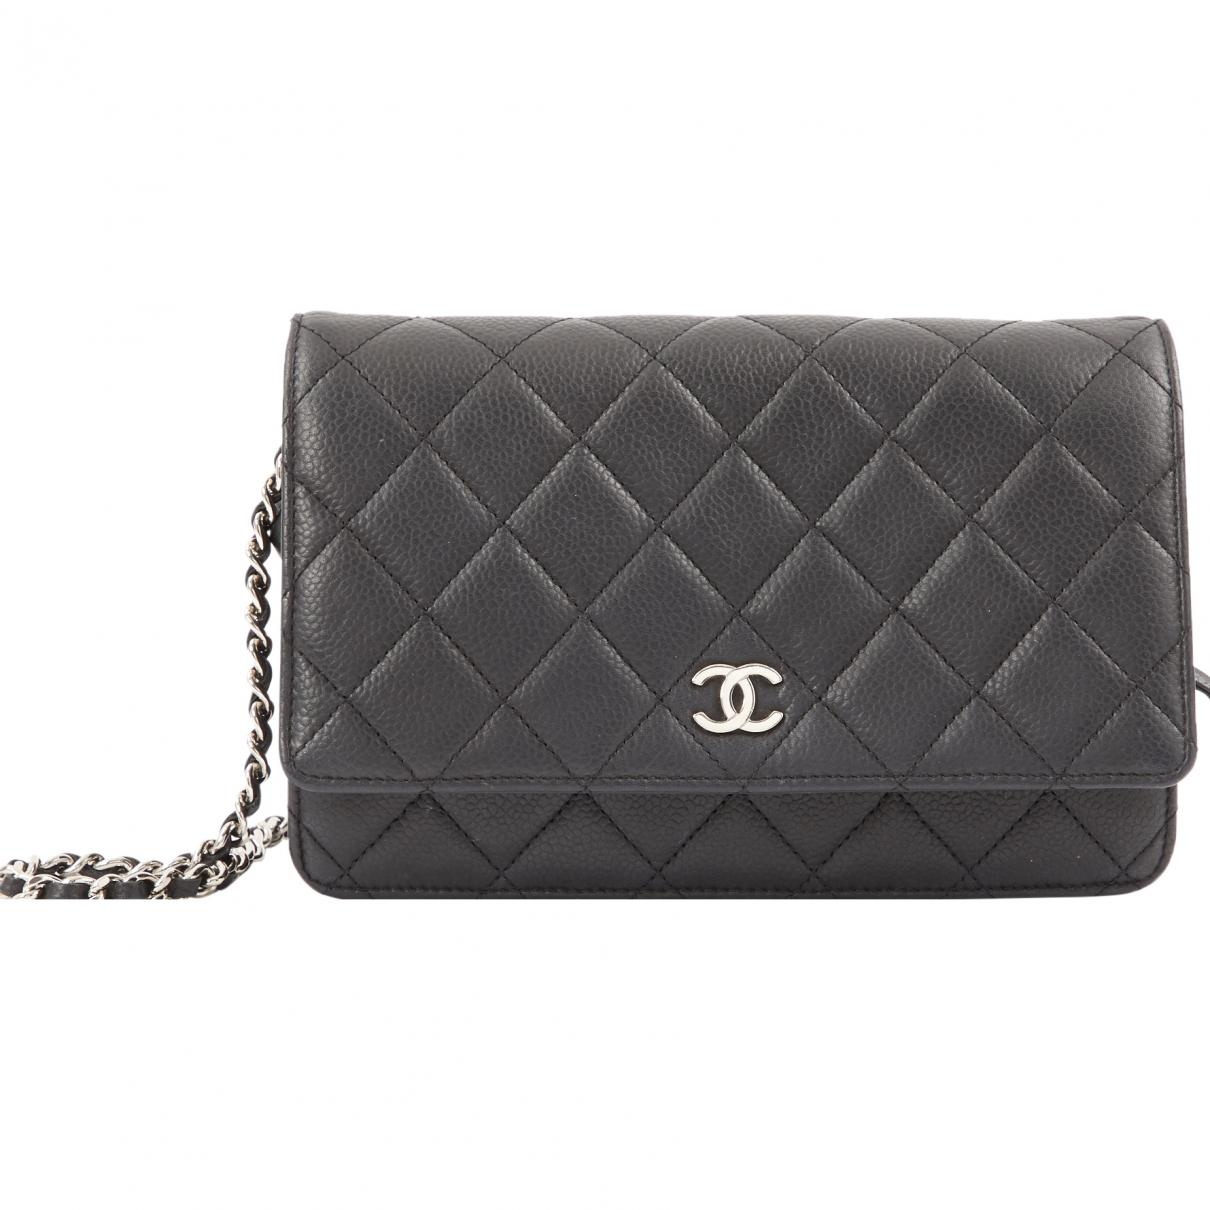 Chanel Pre-owned - Leather clutch bag sKktEdVPO